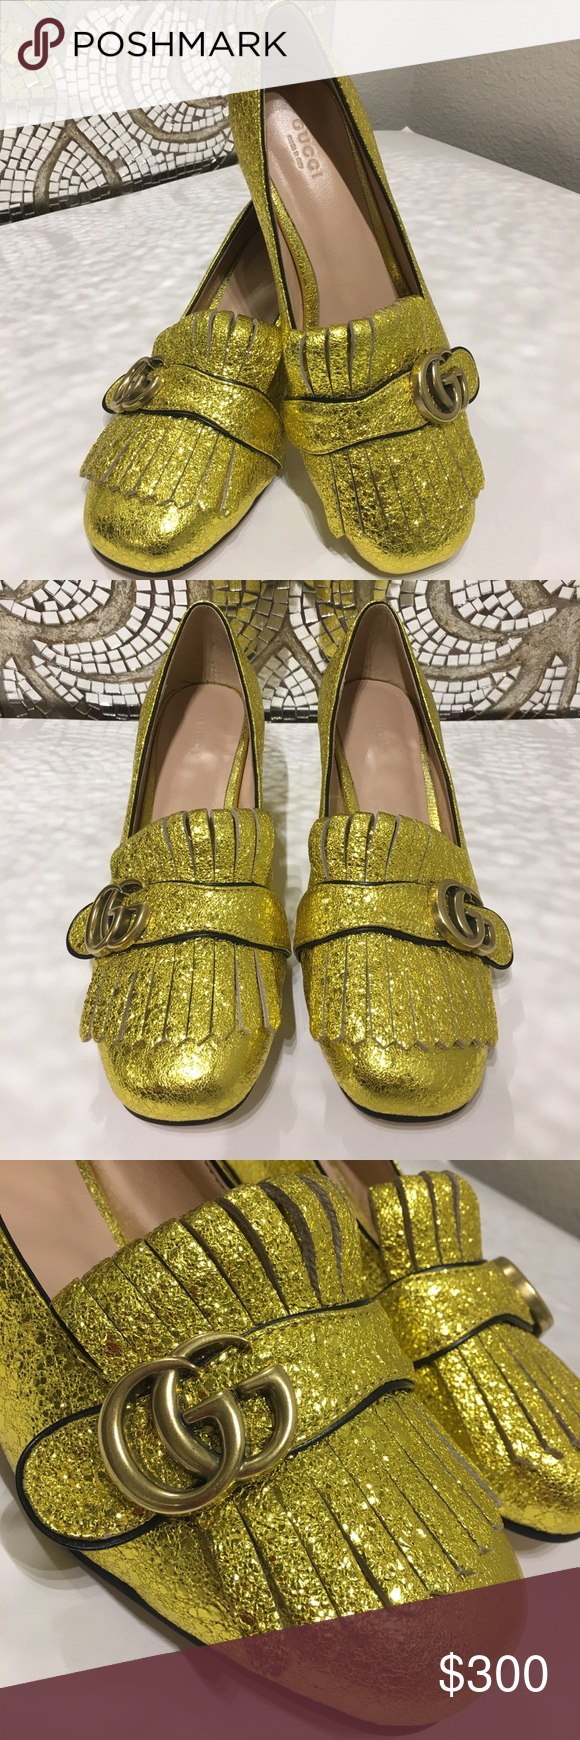 18a3b9bffea Gucci Marmont GG Metallic Yellow Gold Mid Heels The Marmont metallic  laminate leather mid-heel pump with Double G hardware detail on fold over  fringe.